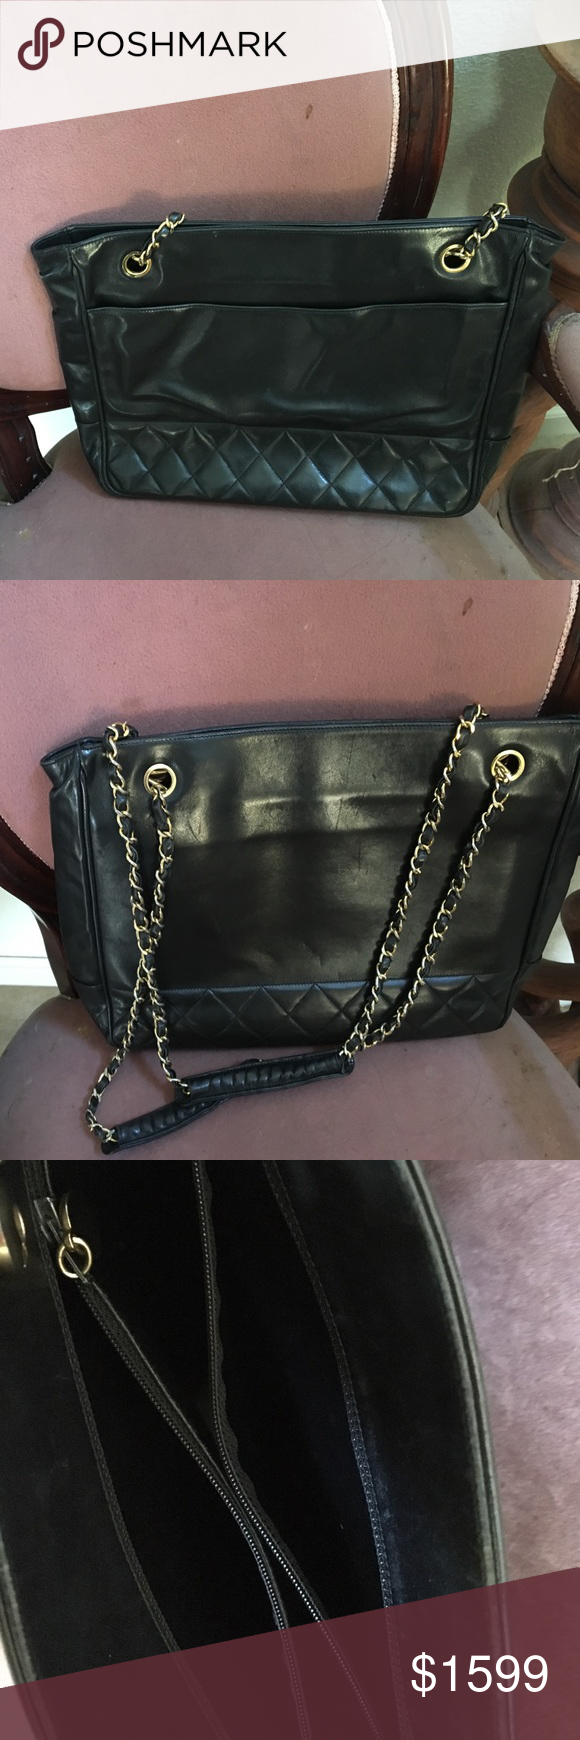 0c817625b990 Authentic Chanel tote Need to let go this beauty only because it is little  small for